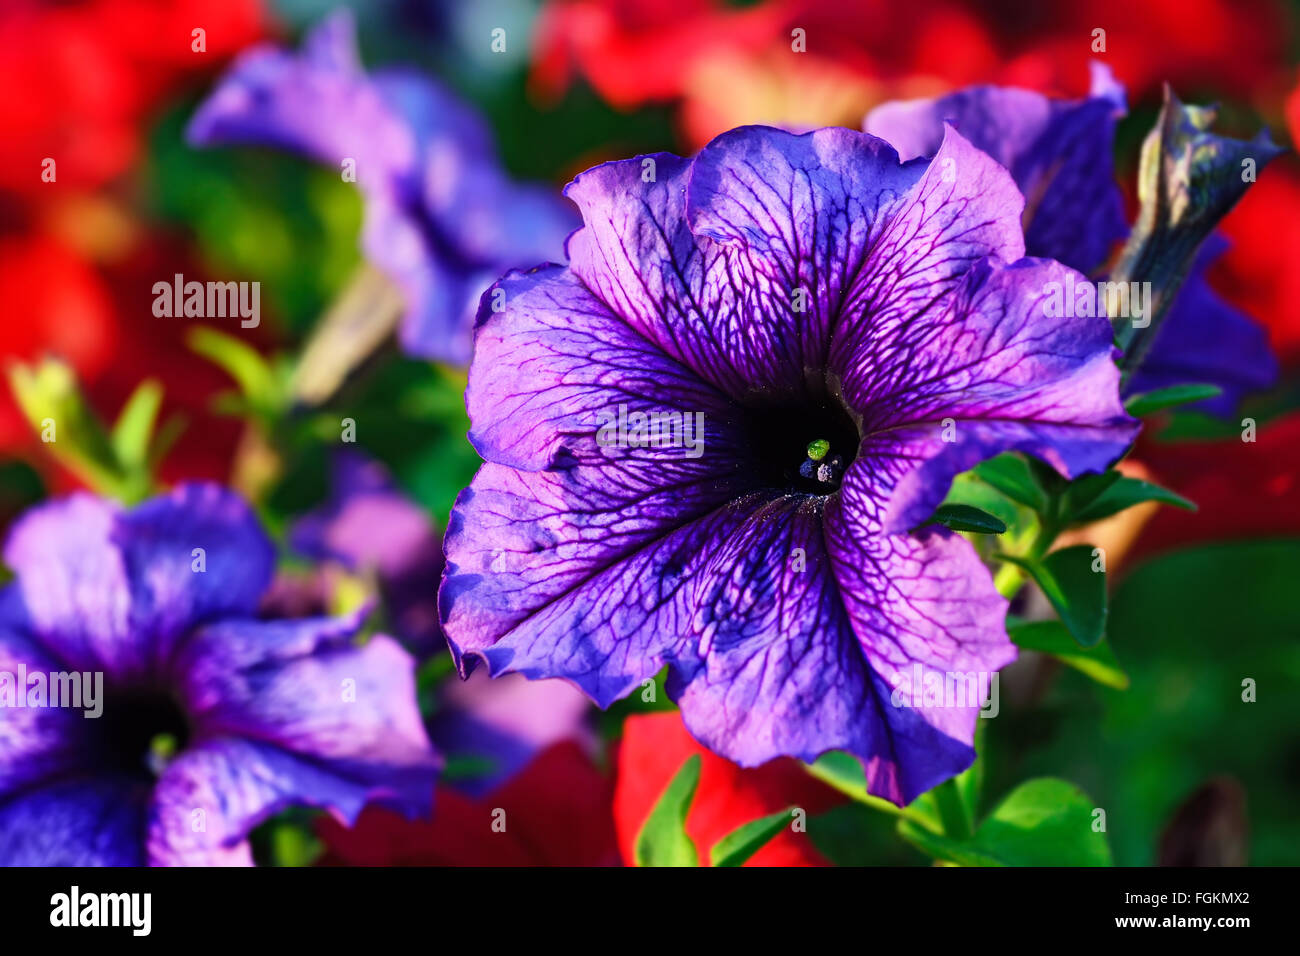 Floral background. Flowers of Petunia close up - Stock Image